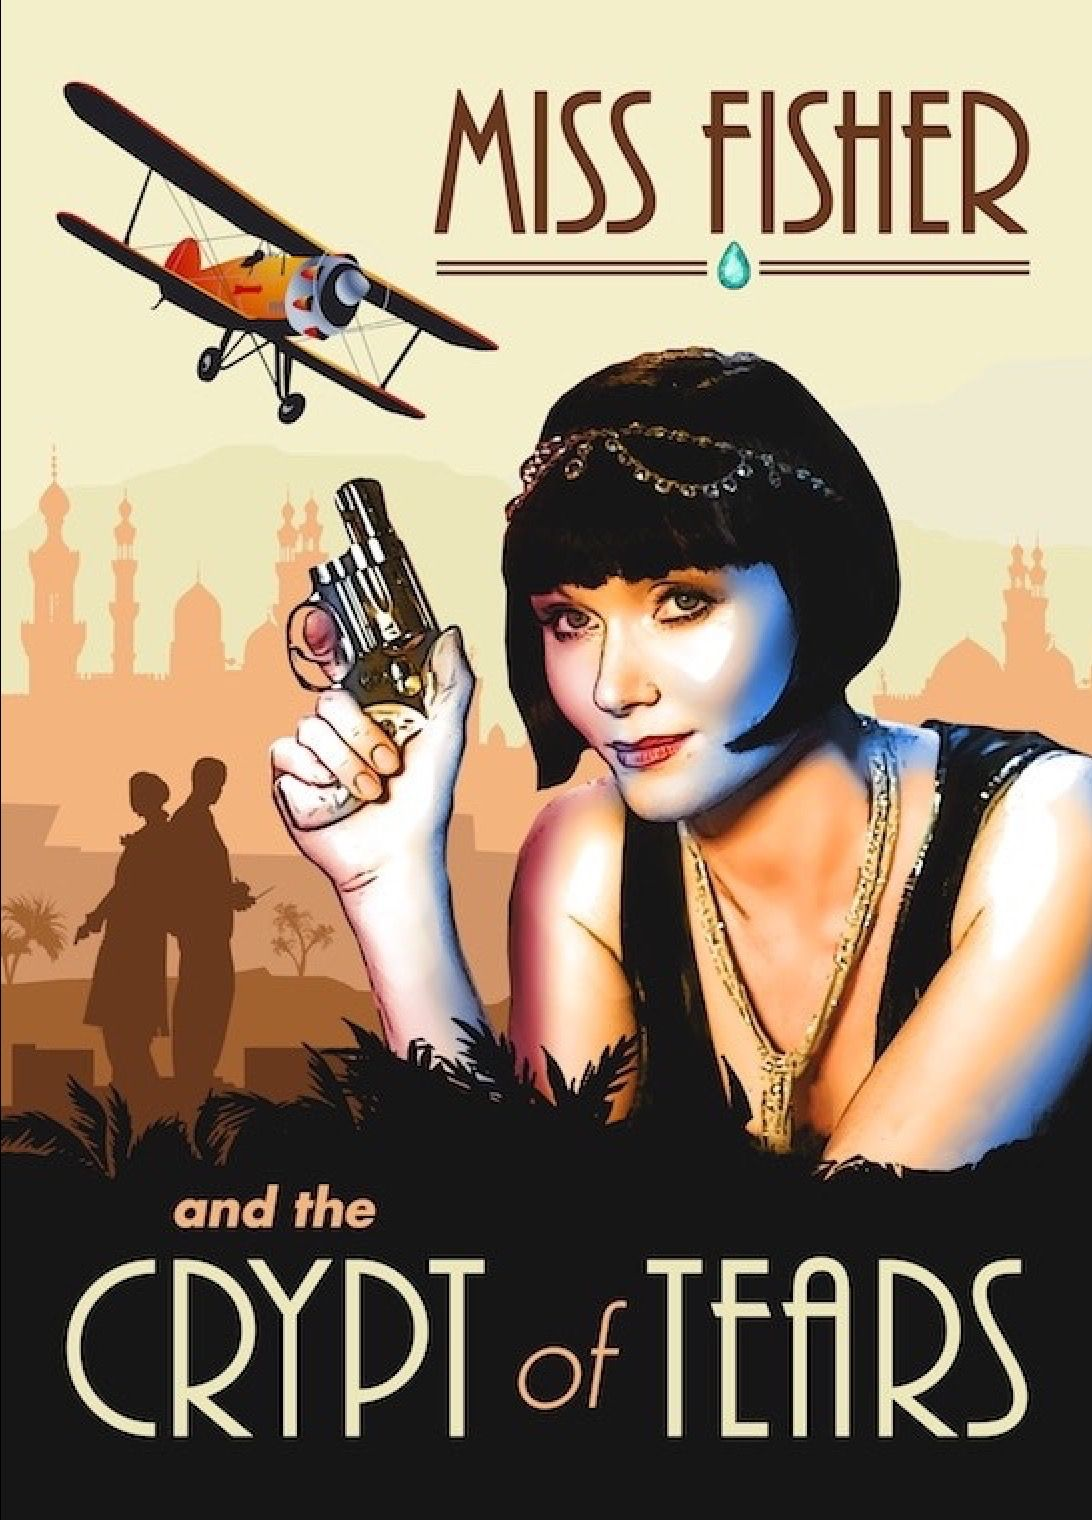 Miss Fisher & the Crypt of Tears 2020 English 720p HDRip 800MB